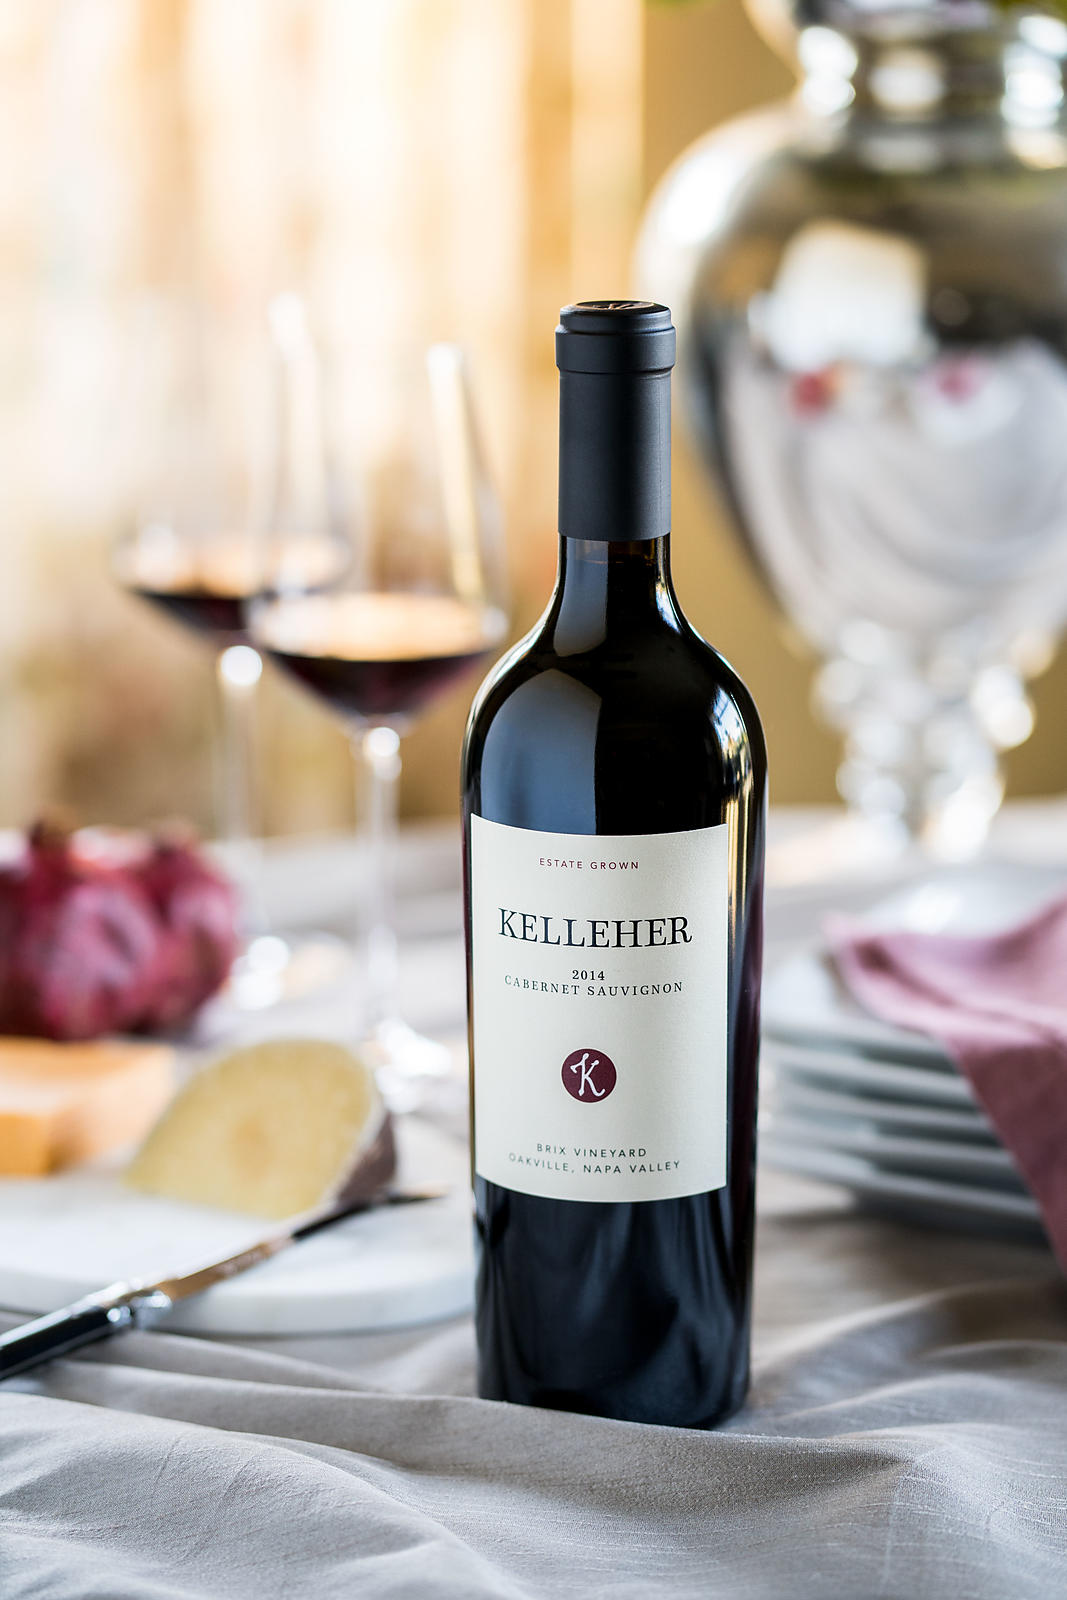 Commercial wine bottle shots for Kelleher Family Winery in Yountville, Napa County. Photo by Jason Tinacci